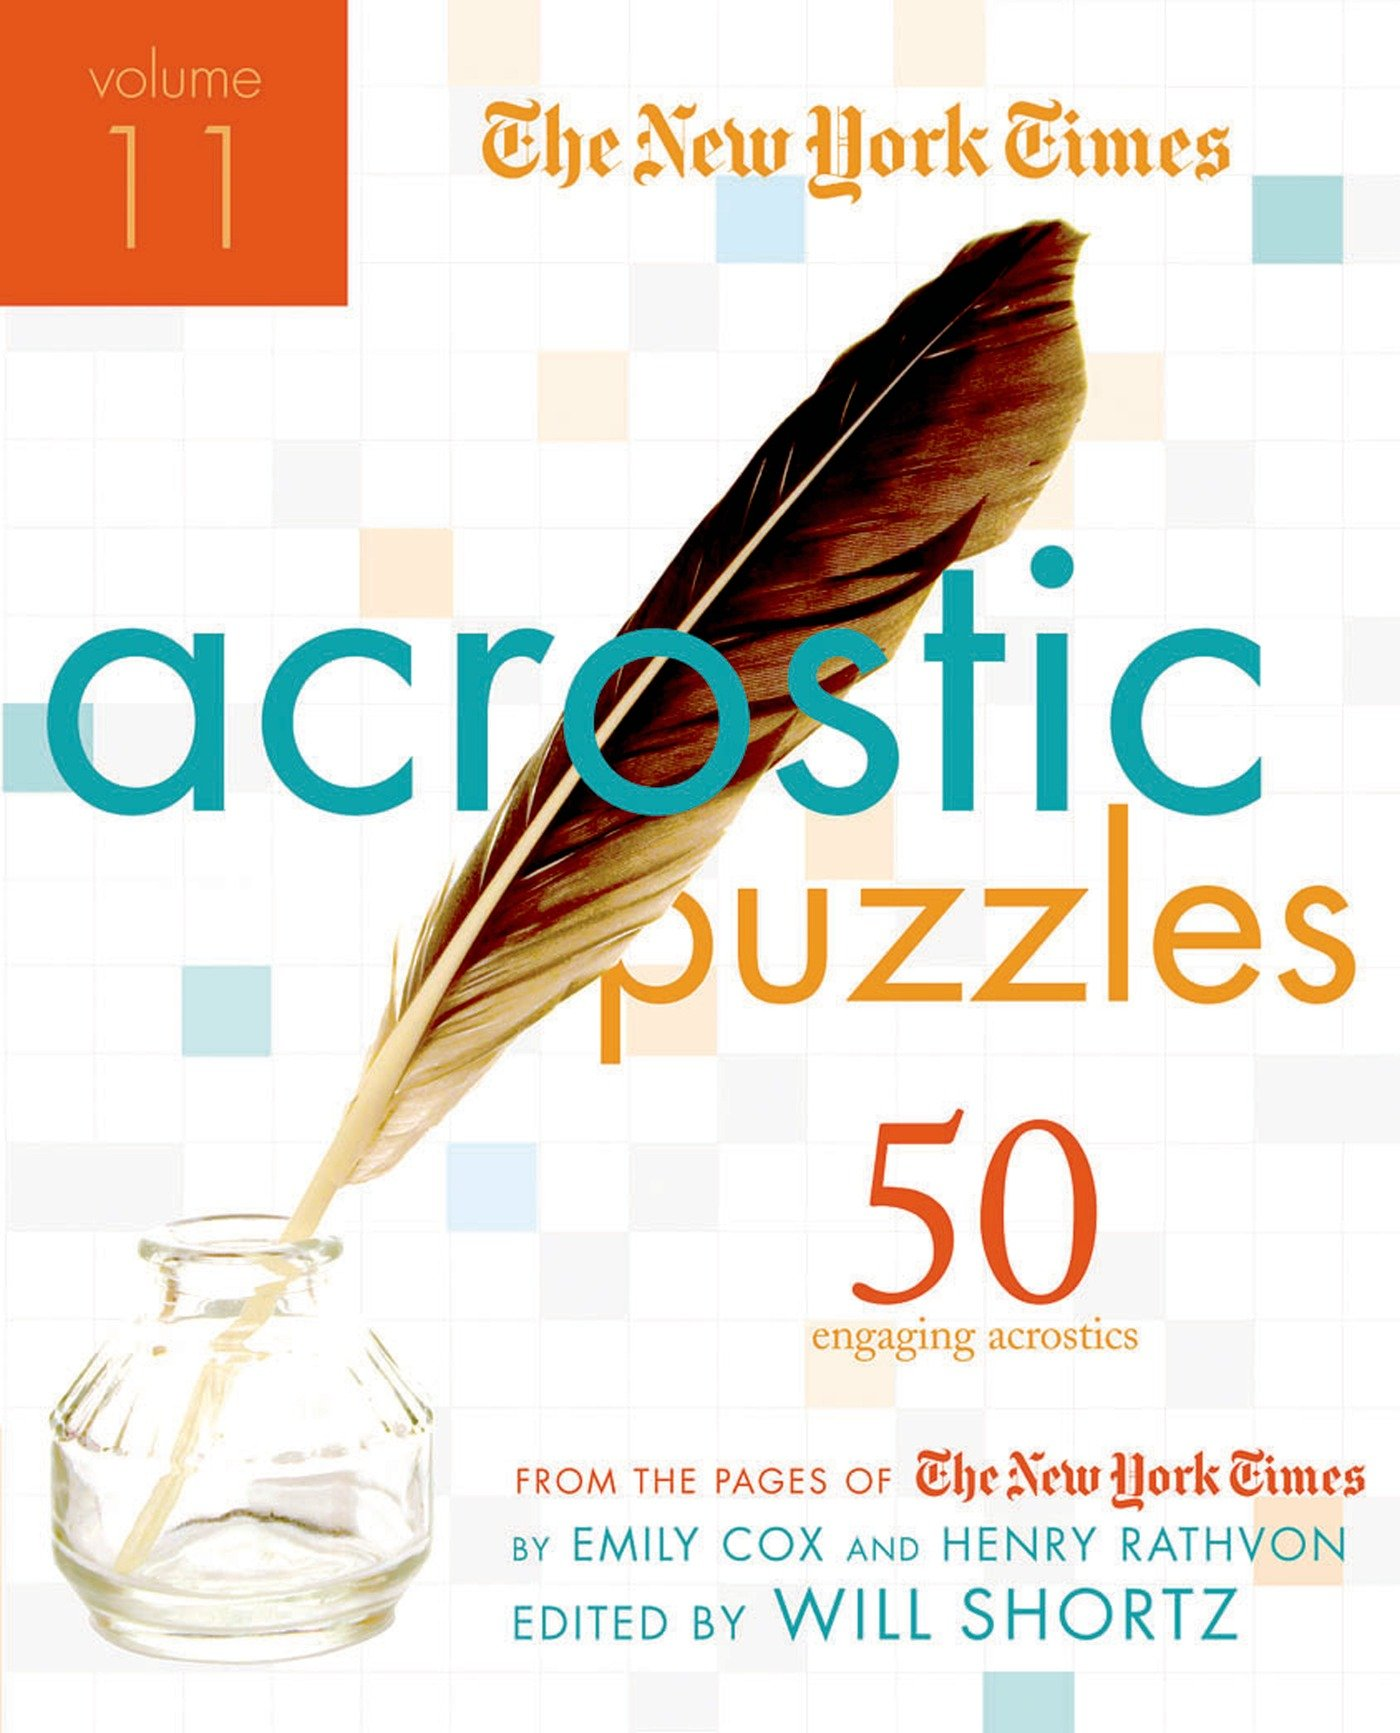 Download The New York Times Acrostic Puzzles Volume 11: 50 Engaging Acrostics From The Pages Of The New York Times 